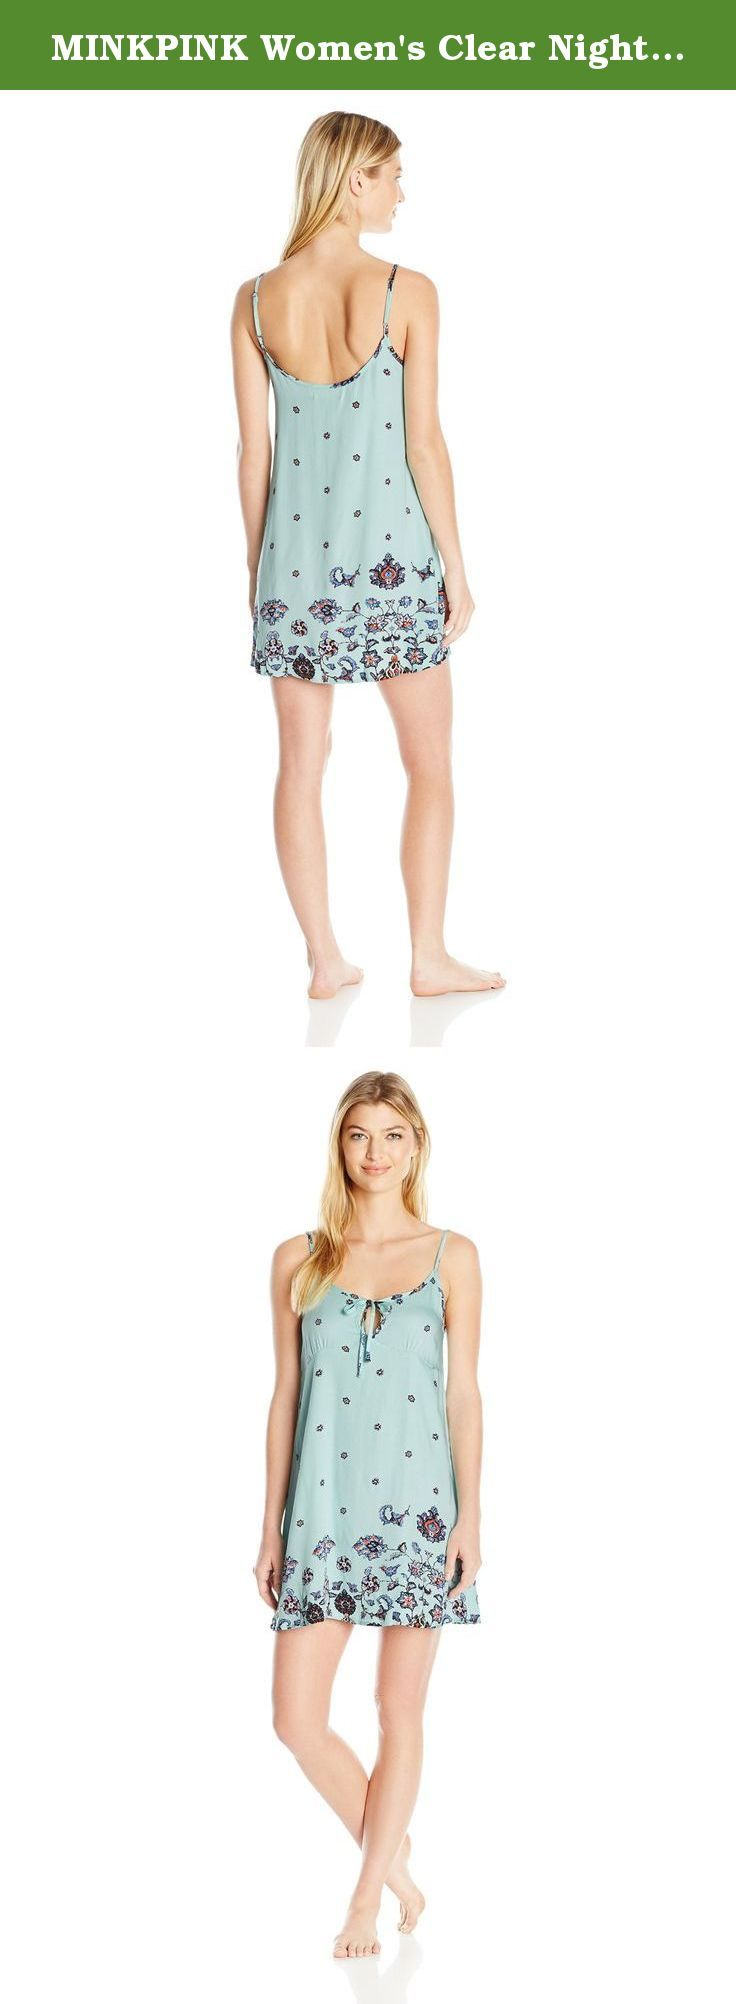 MINKPINK Women's Clear Night Sky Nightie, Multi, Small. Take the MINKPINK clear night sky nightie out with a pair of sneakers, or to bed with the super easy blue color way and placement printed paisley.